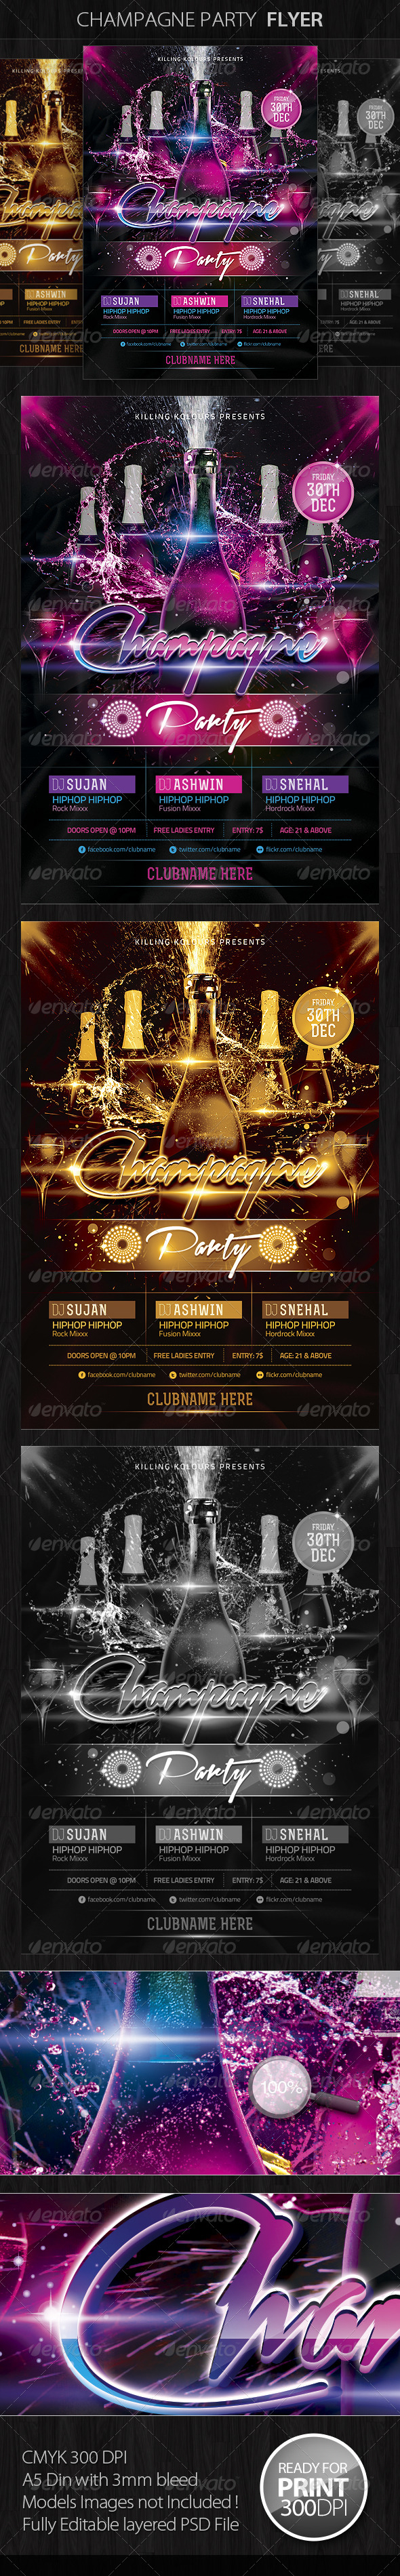 GraphicRiver Champagne Party Flyer 4575818